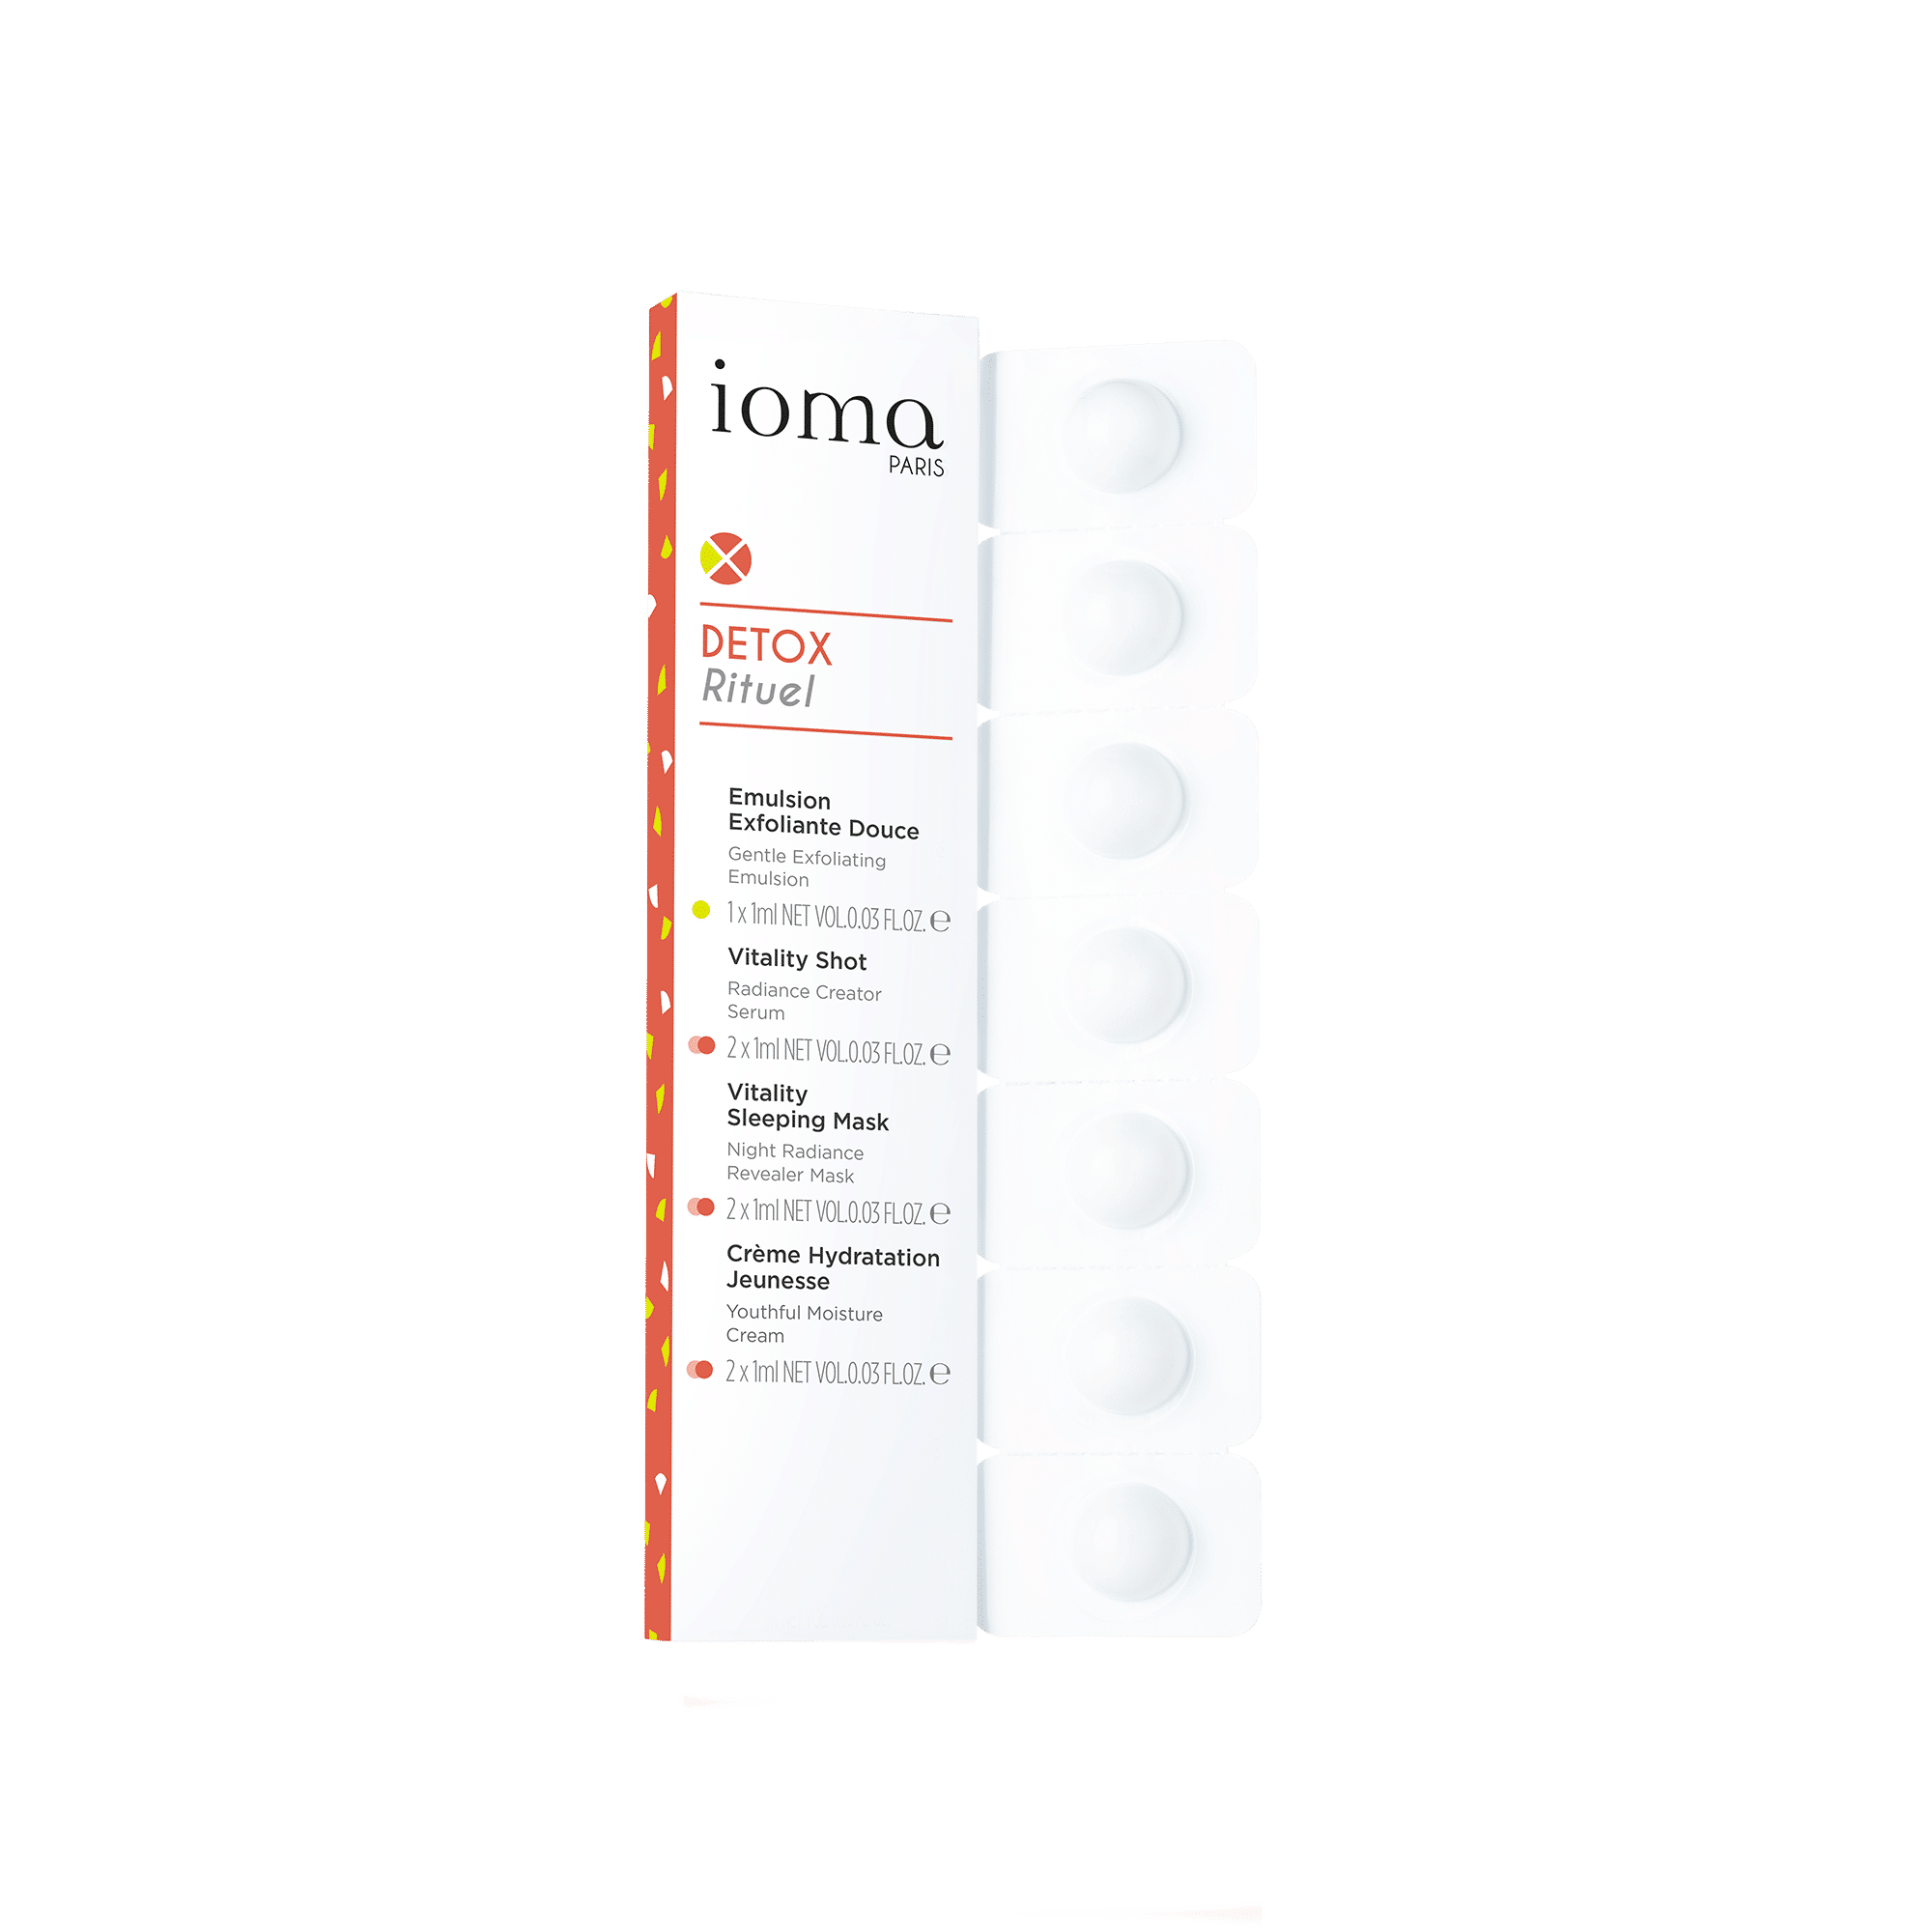 ioma-tabs-detox-rituel-beaut-travel-kit-face-care-radiance